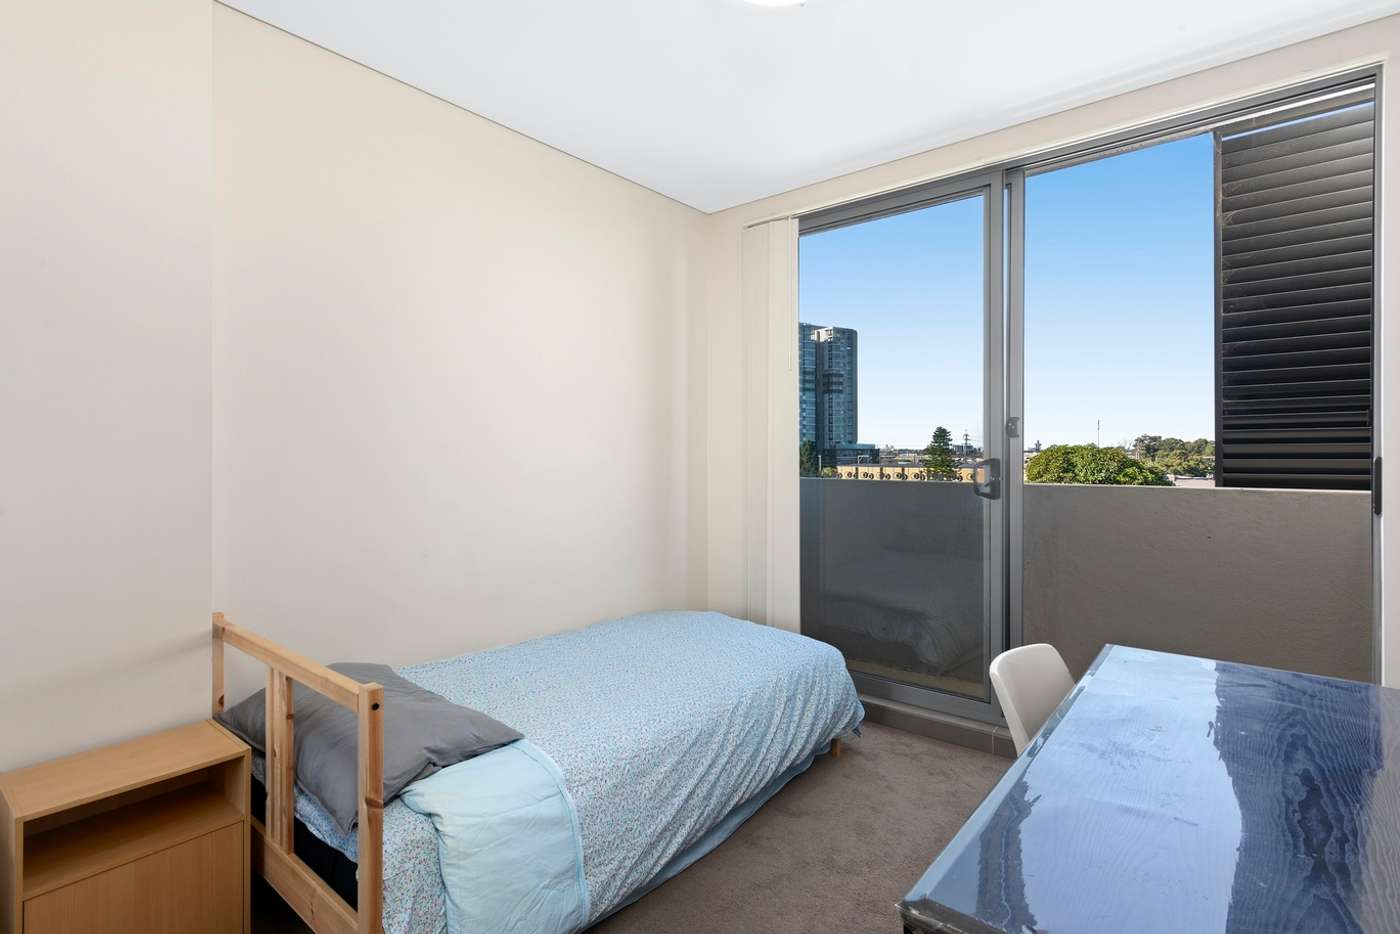 Sixth view of Homely apartment listing, 9/19-21 Enid Street, Granville NSW 2142